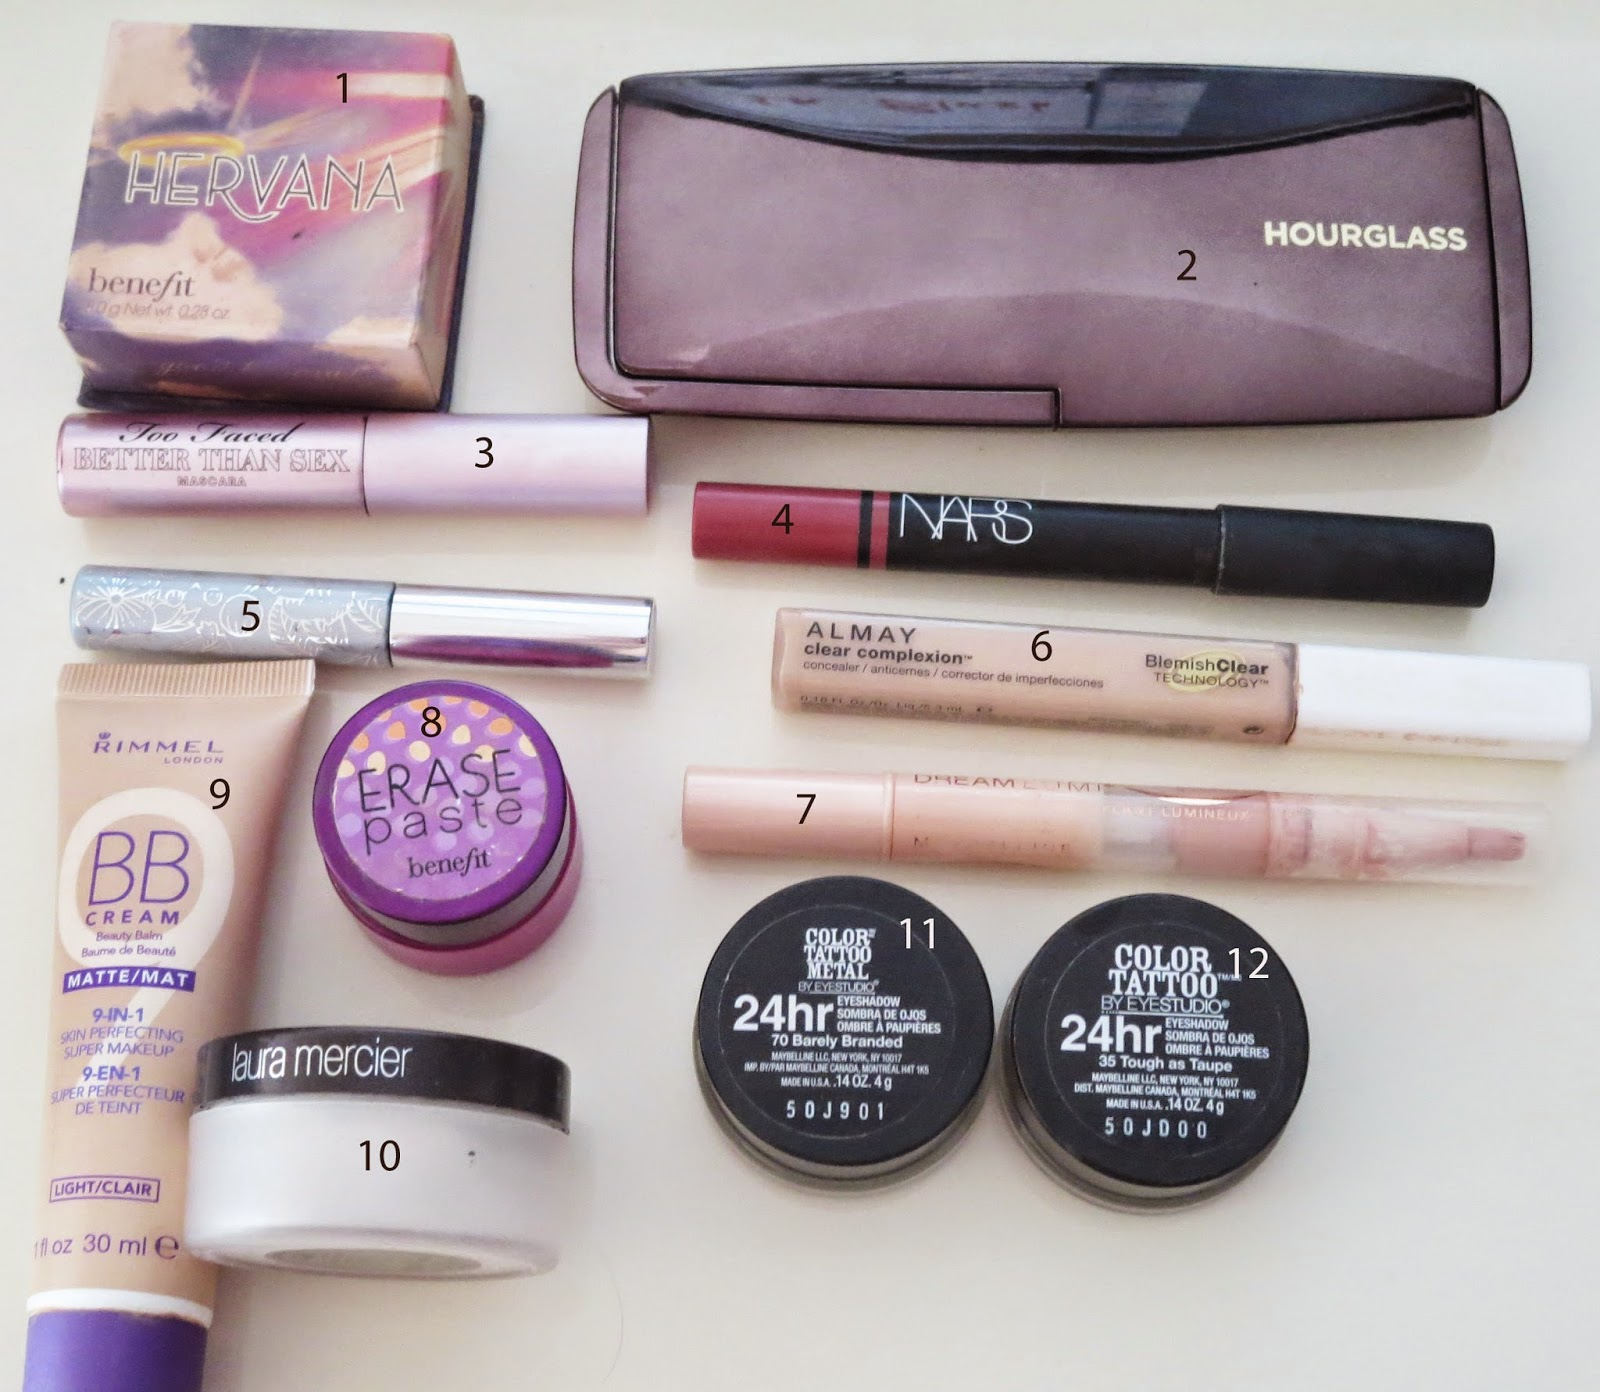 a picture of makeup products for a job interview ; benefit, hourglass, nars, too faced, rimmel, maybelline, laura mercier, almay